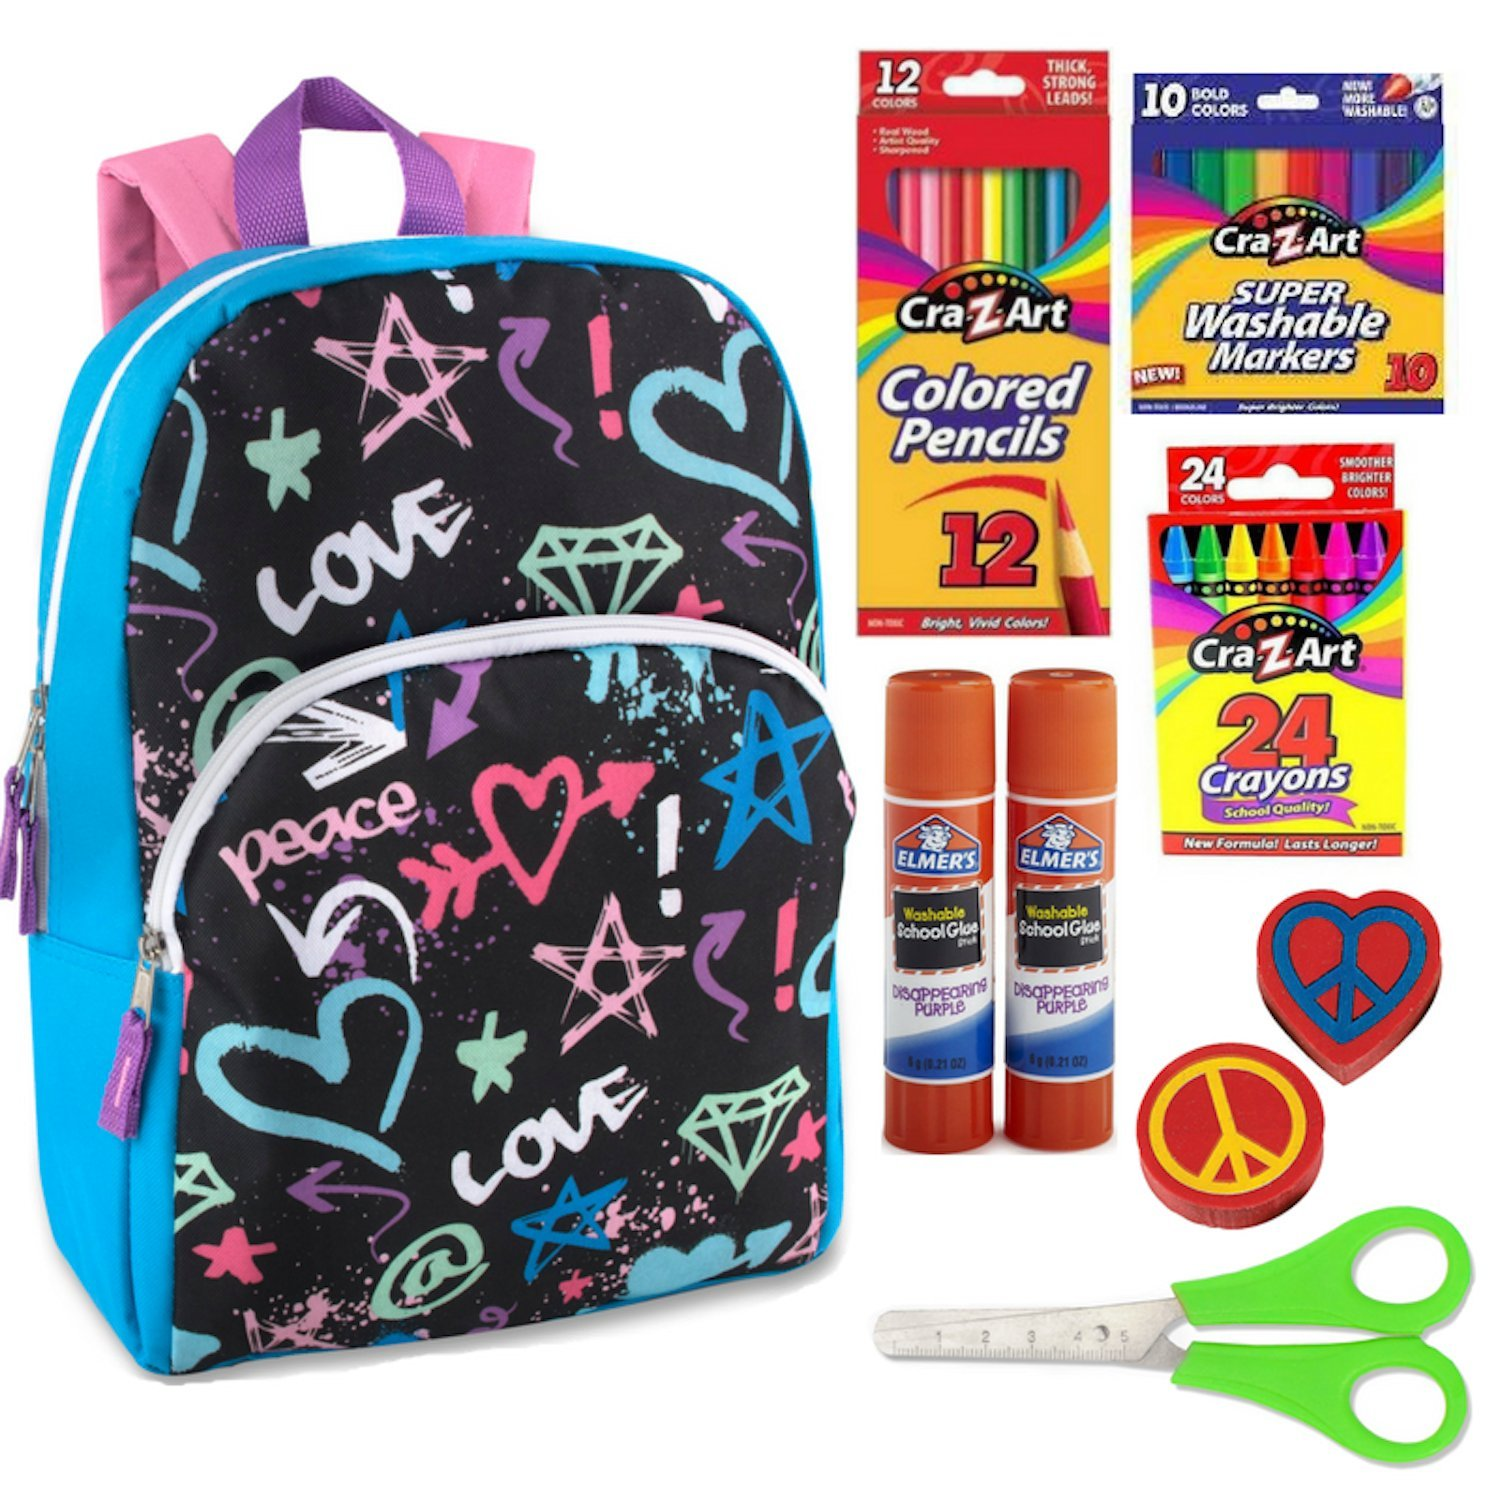 Peace Love Kids Backpack for girls or boys. 55 Count School Crafts Supplies Bundle.